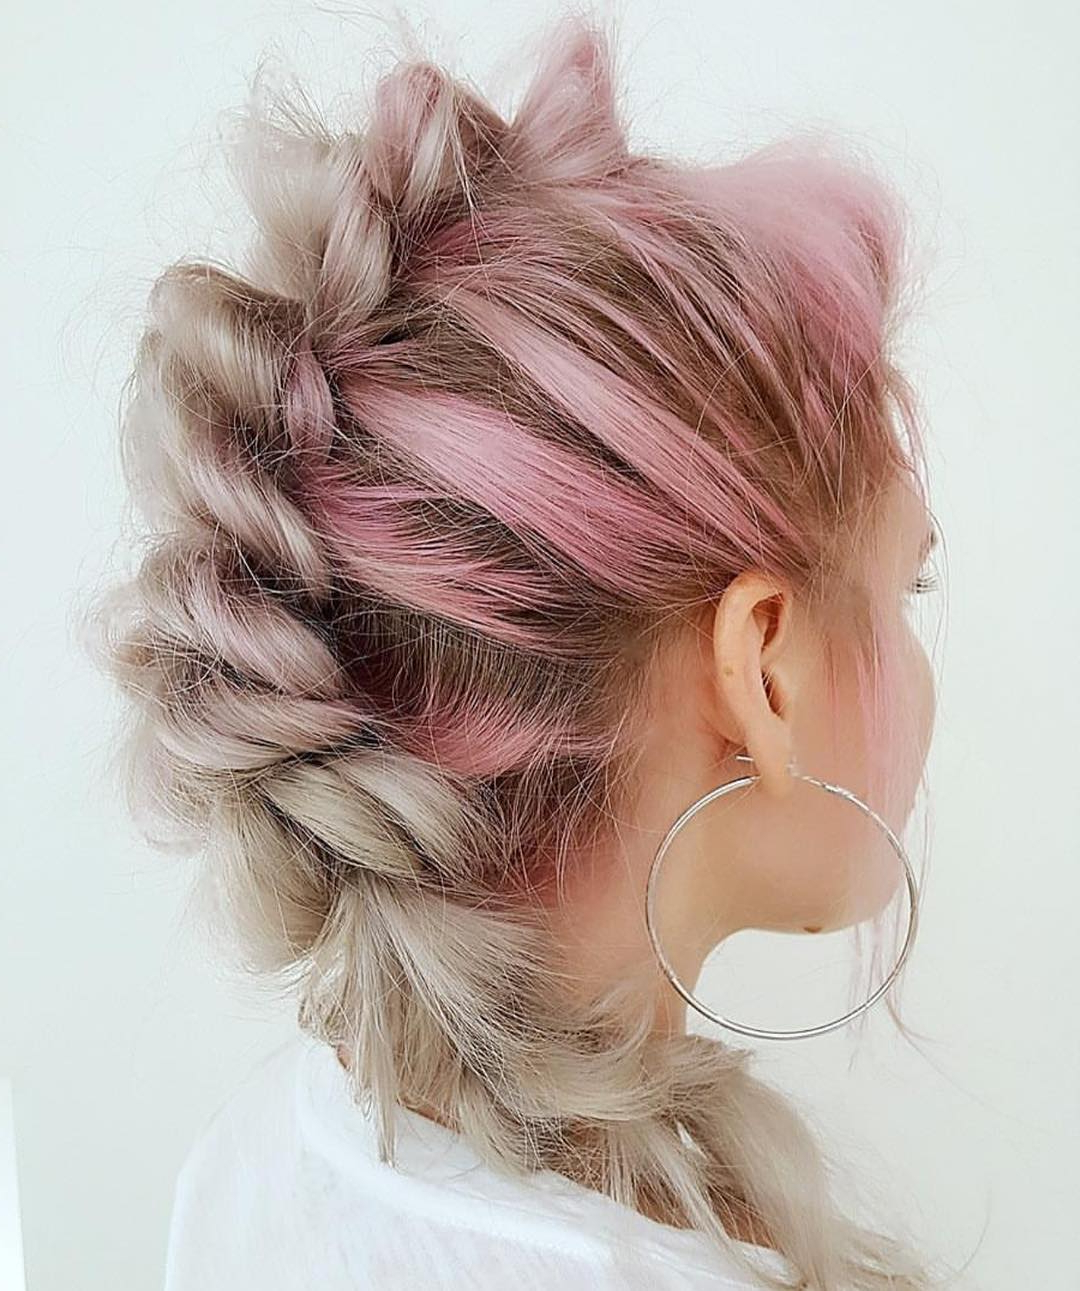 30 Rope Braid Hairstyles Looking Both Casual And Fancy Inside Most Current Casual Rope Braid Hairstyles (View 7 of 20)